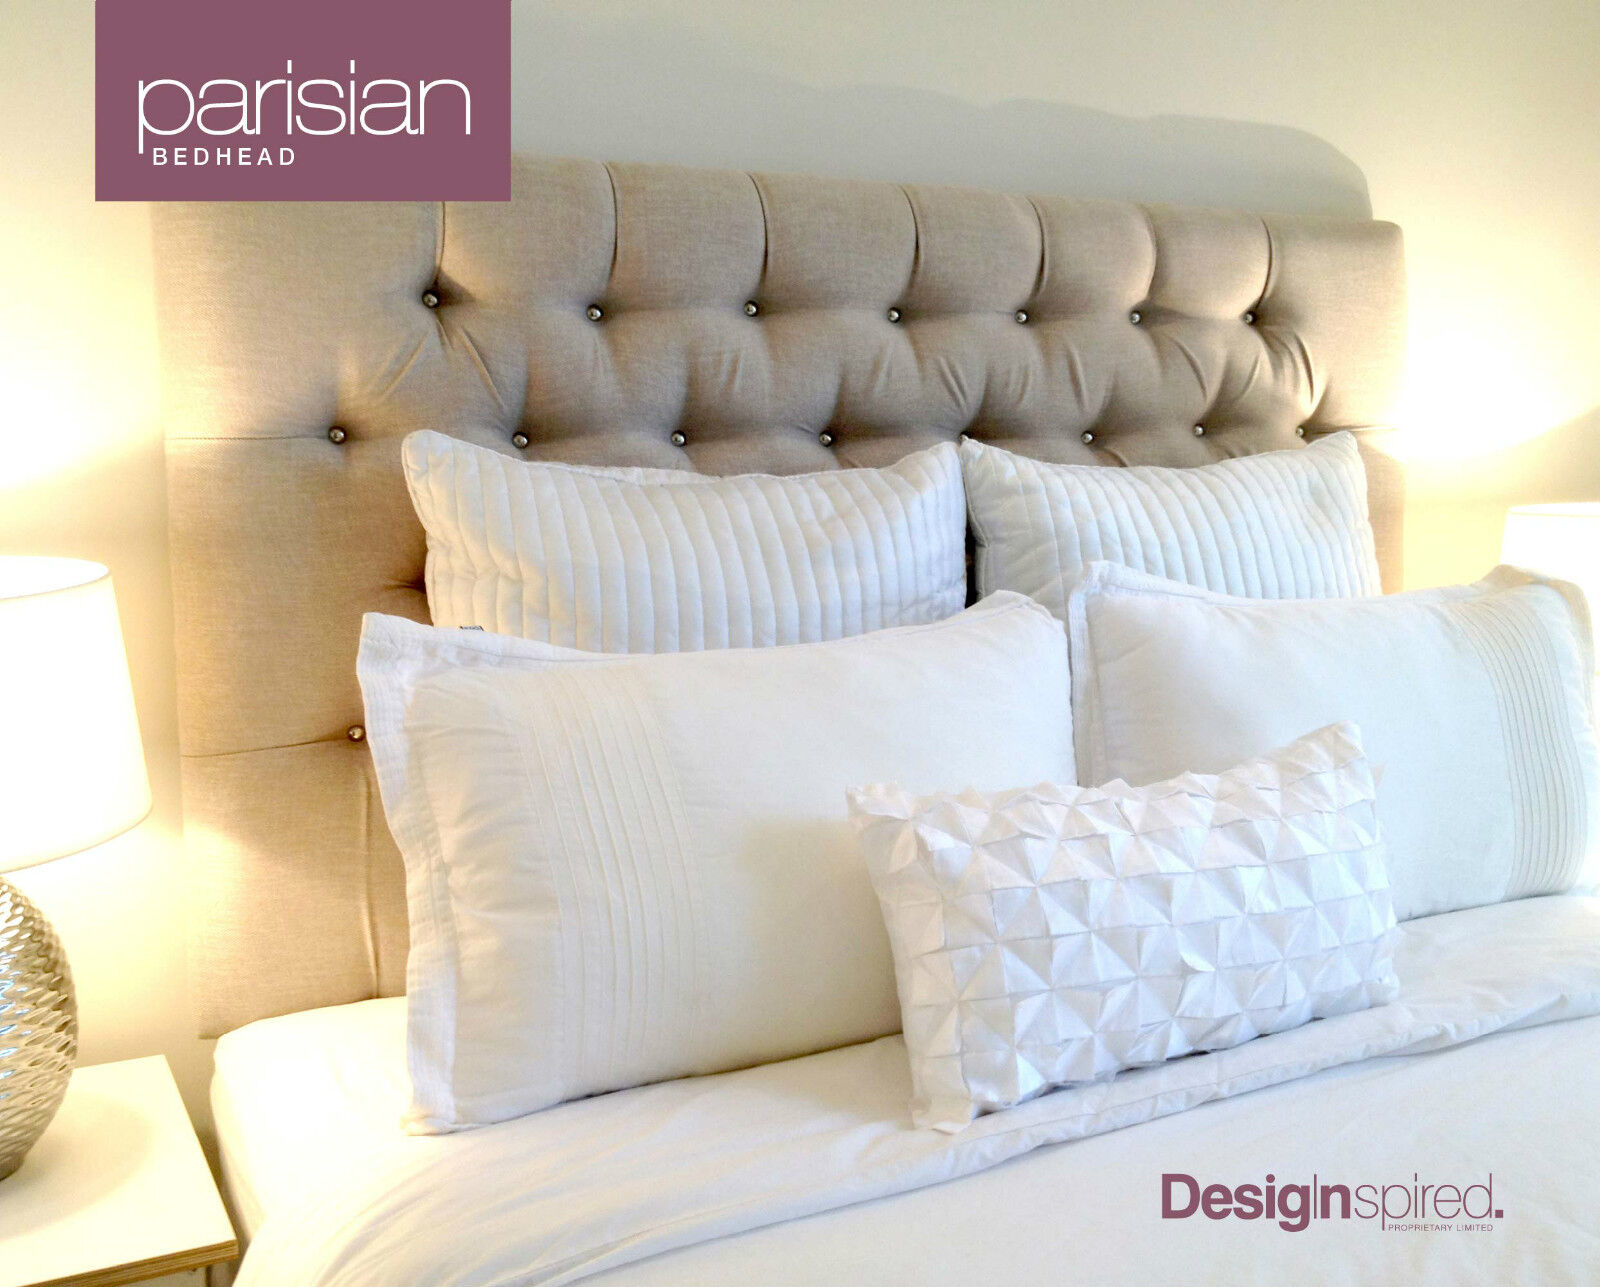 Headboard For Ensemble Parisian Upholstered Bedhead Headboard For Queen